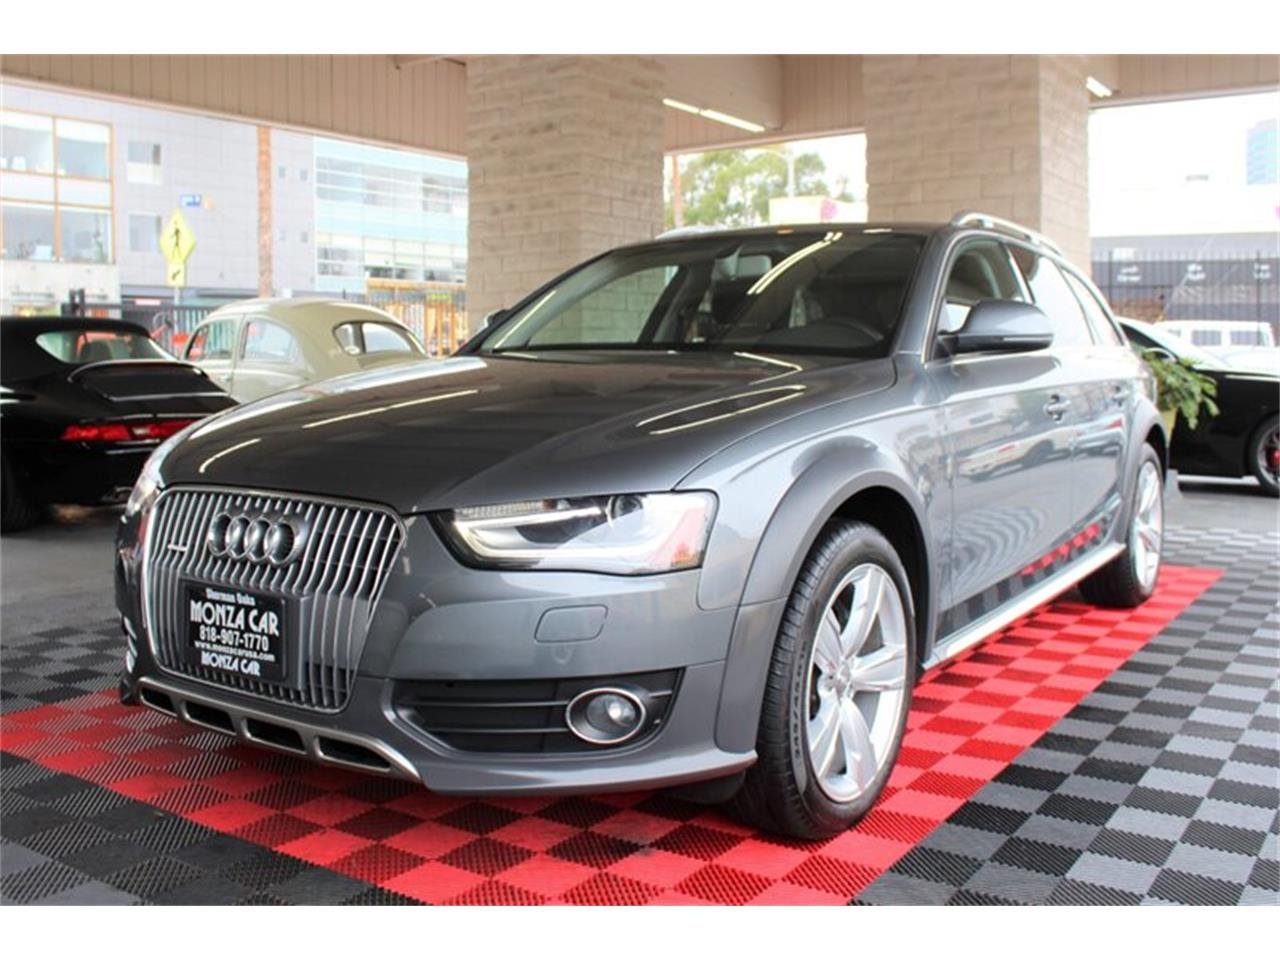 2015 Audi Allroad for sale in Sherman Oaks, CA – photo 2